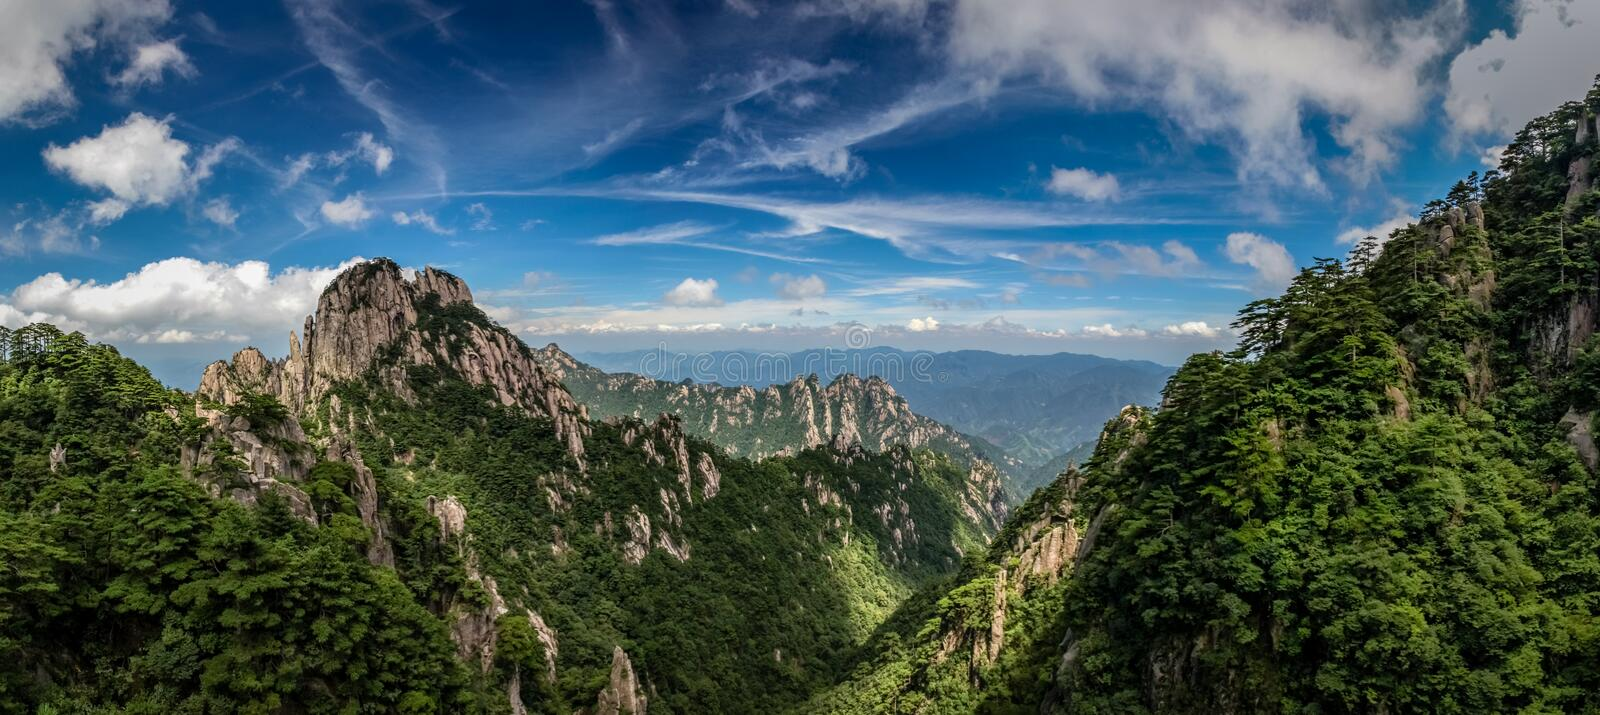 Rocky peaks and old pine trees cover the mountains under a bright blue sky with whispy clouds in Huangshan China stock photos